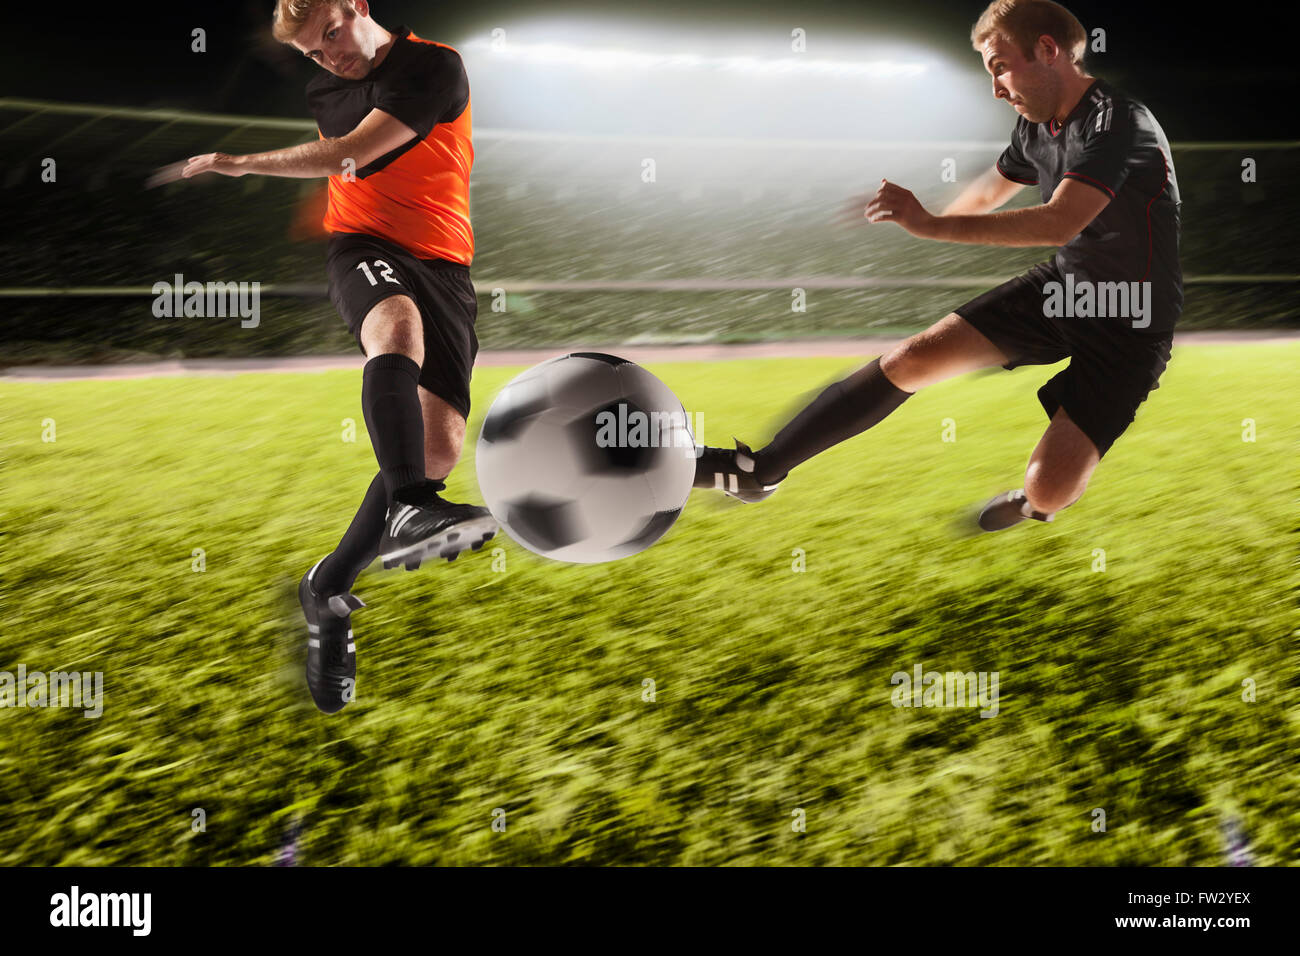 Two soccer players kicking a soccer ball - Stock Image